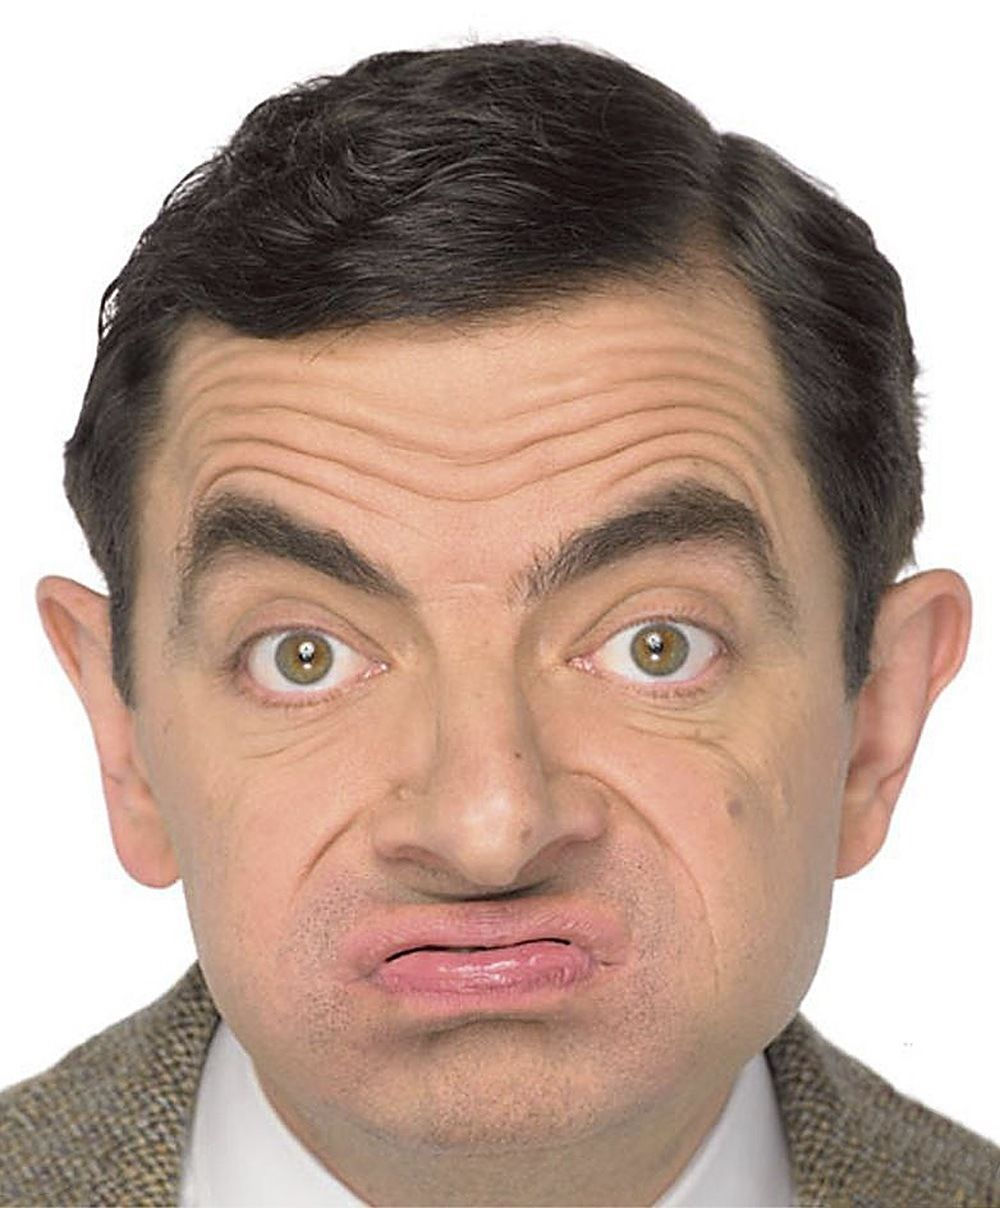 Mr Bean Png Image Purepng Free Transparent Cc0 Png Image Library In 2020 British Sitcoms Mr Bean Comic Actor